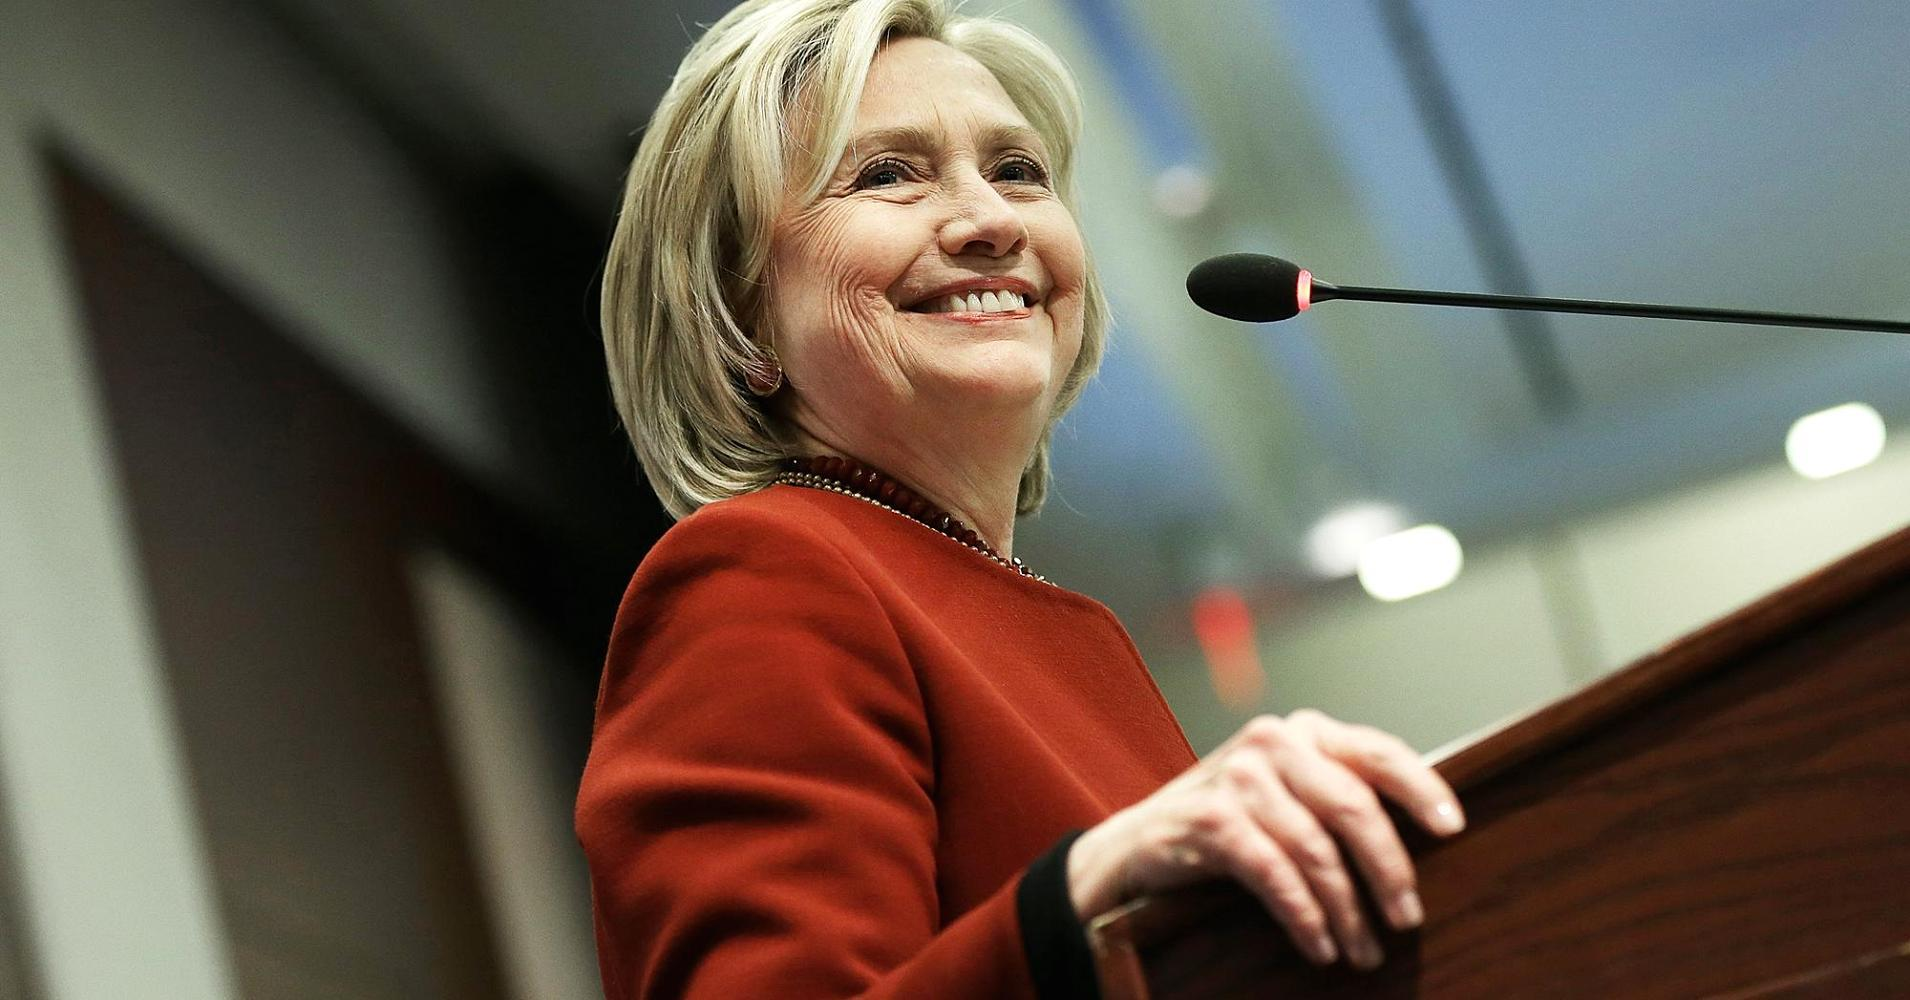 Kudlow: Bashing Hillary? Don't go there, GOP